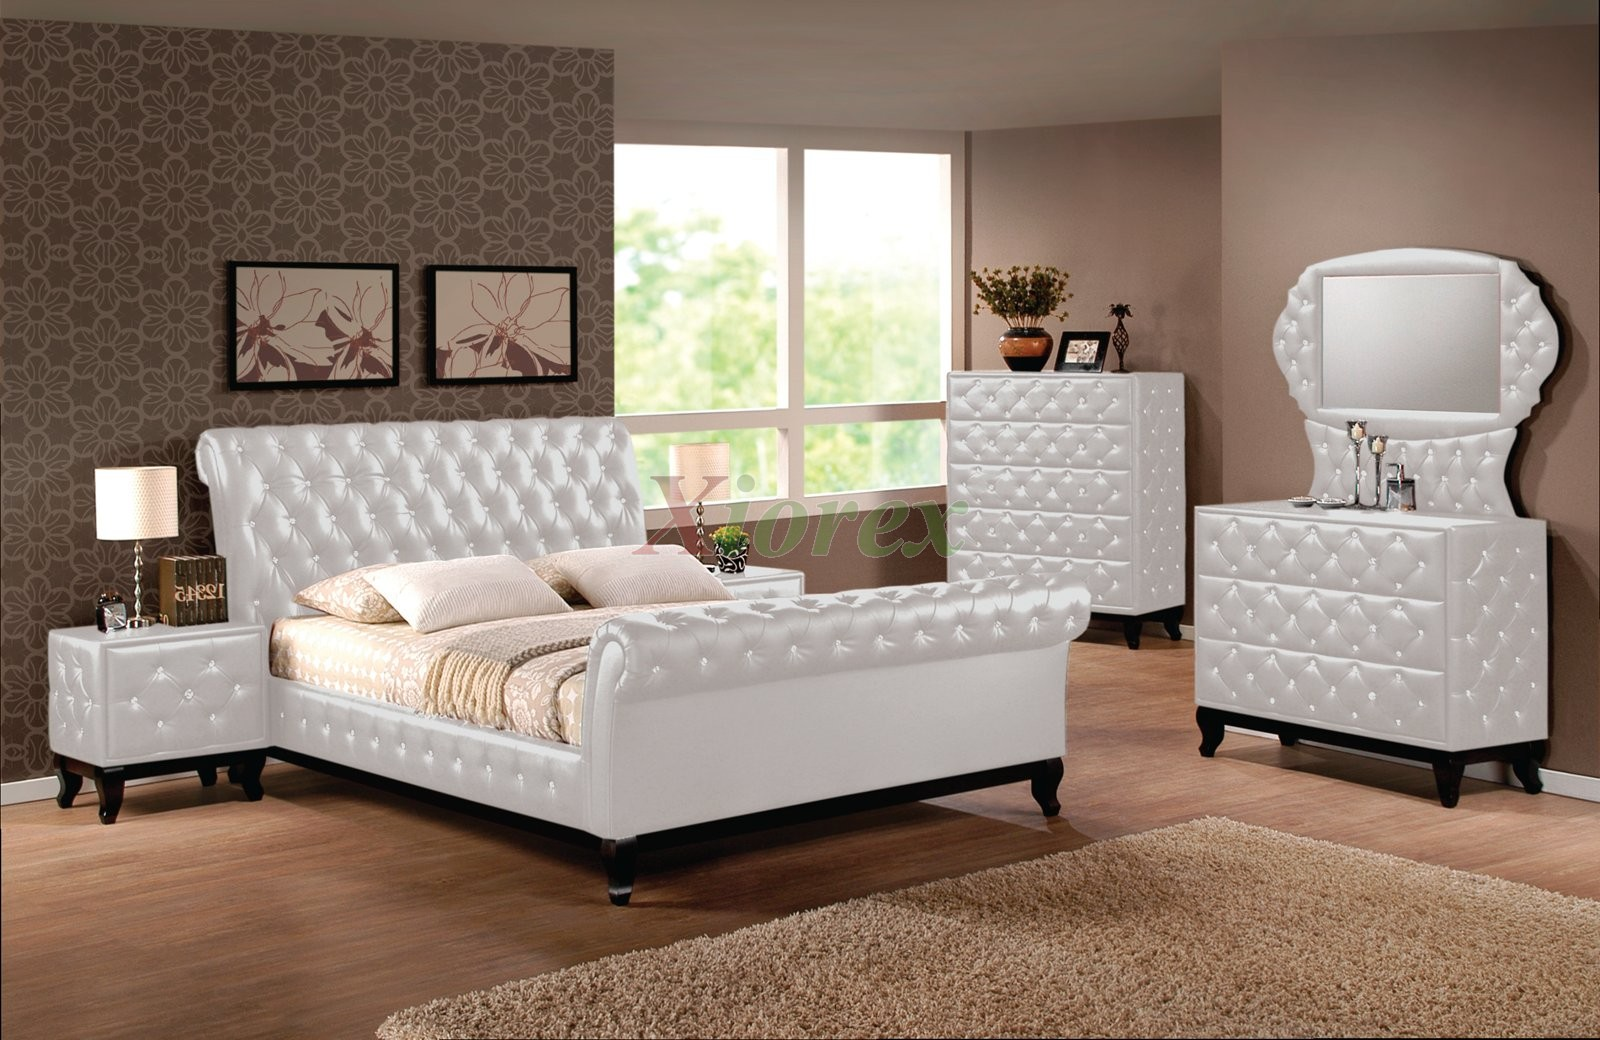 Upholstered sleigh platform bedroom furniture set 151 xiorex for White bed set furniture